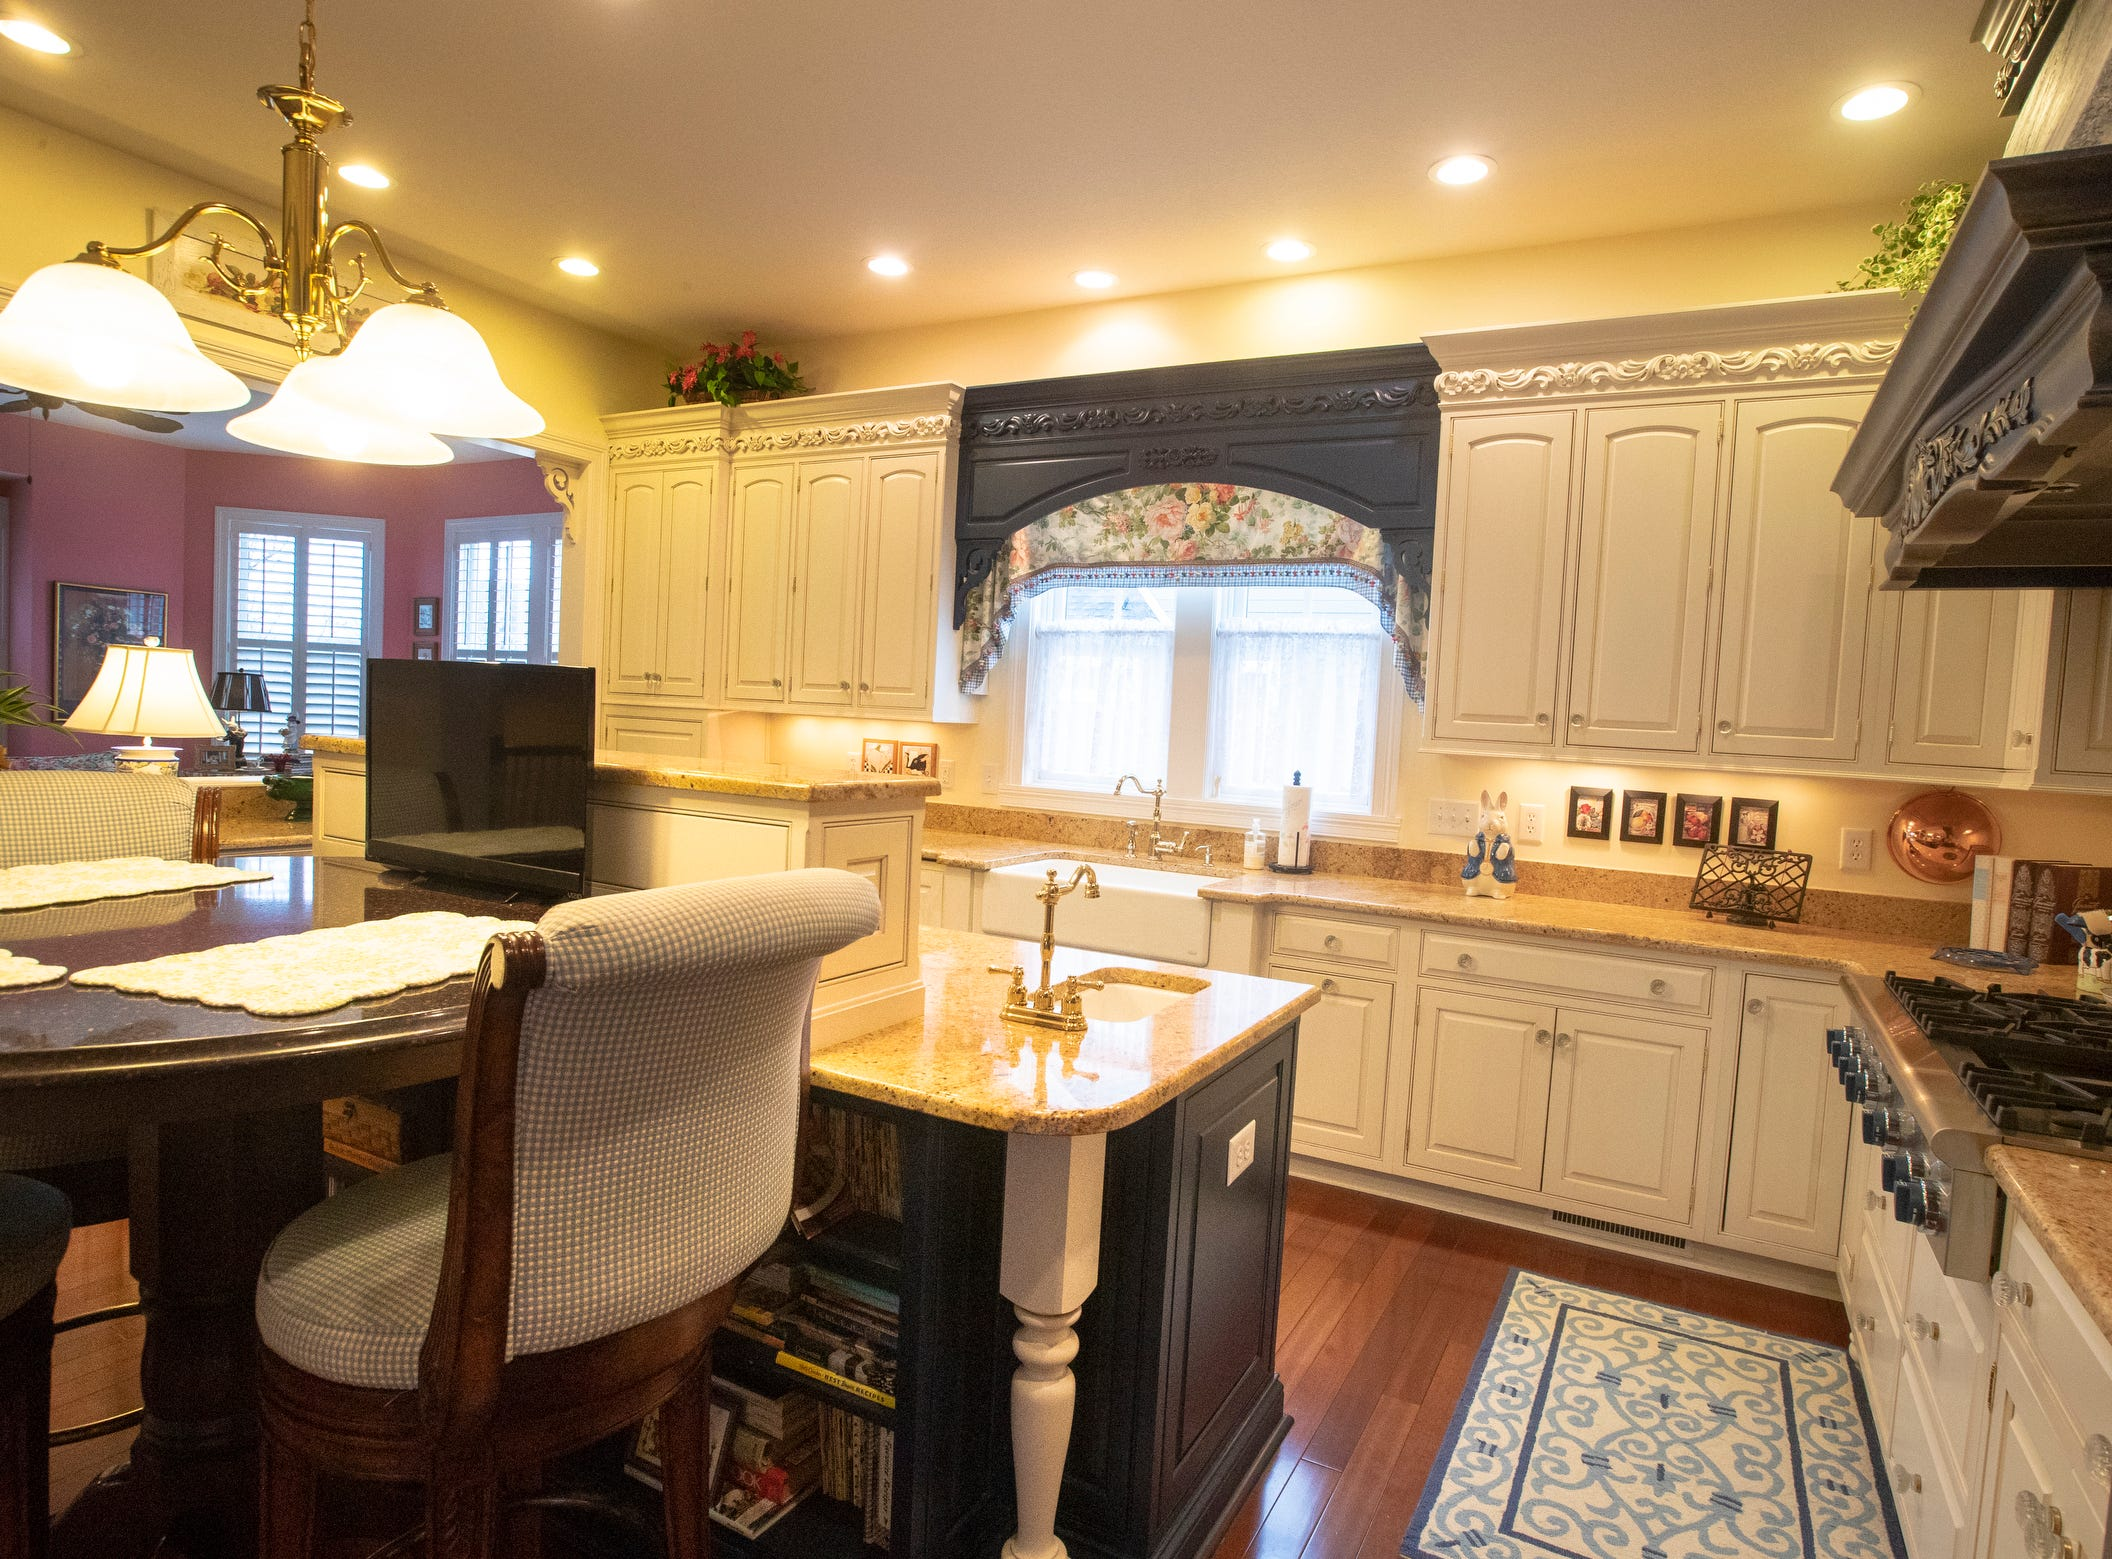 The kitchen inside a thirteen-year-old Victorian home in the Village of West Clay, Carmel, March 20, 2019. The house includes 16 rooms with five bedrooms, 8,348 square feet, and is listed at $1.275 million.